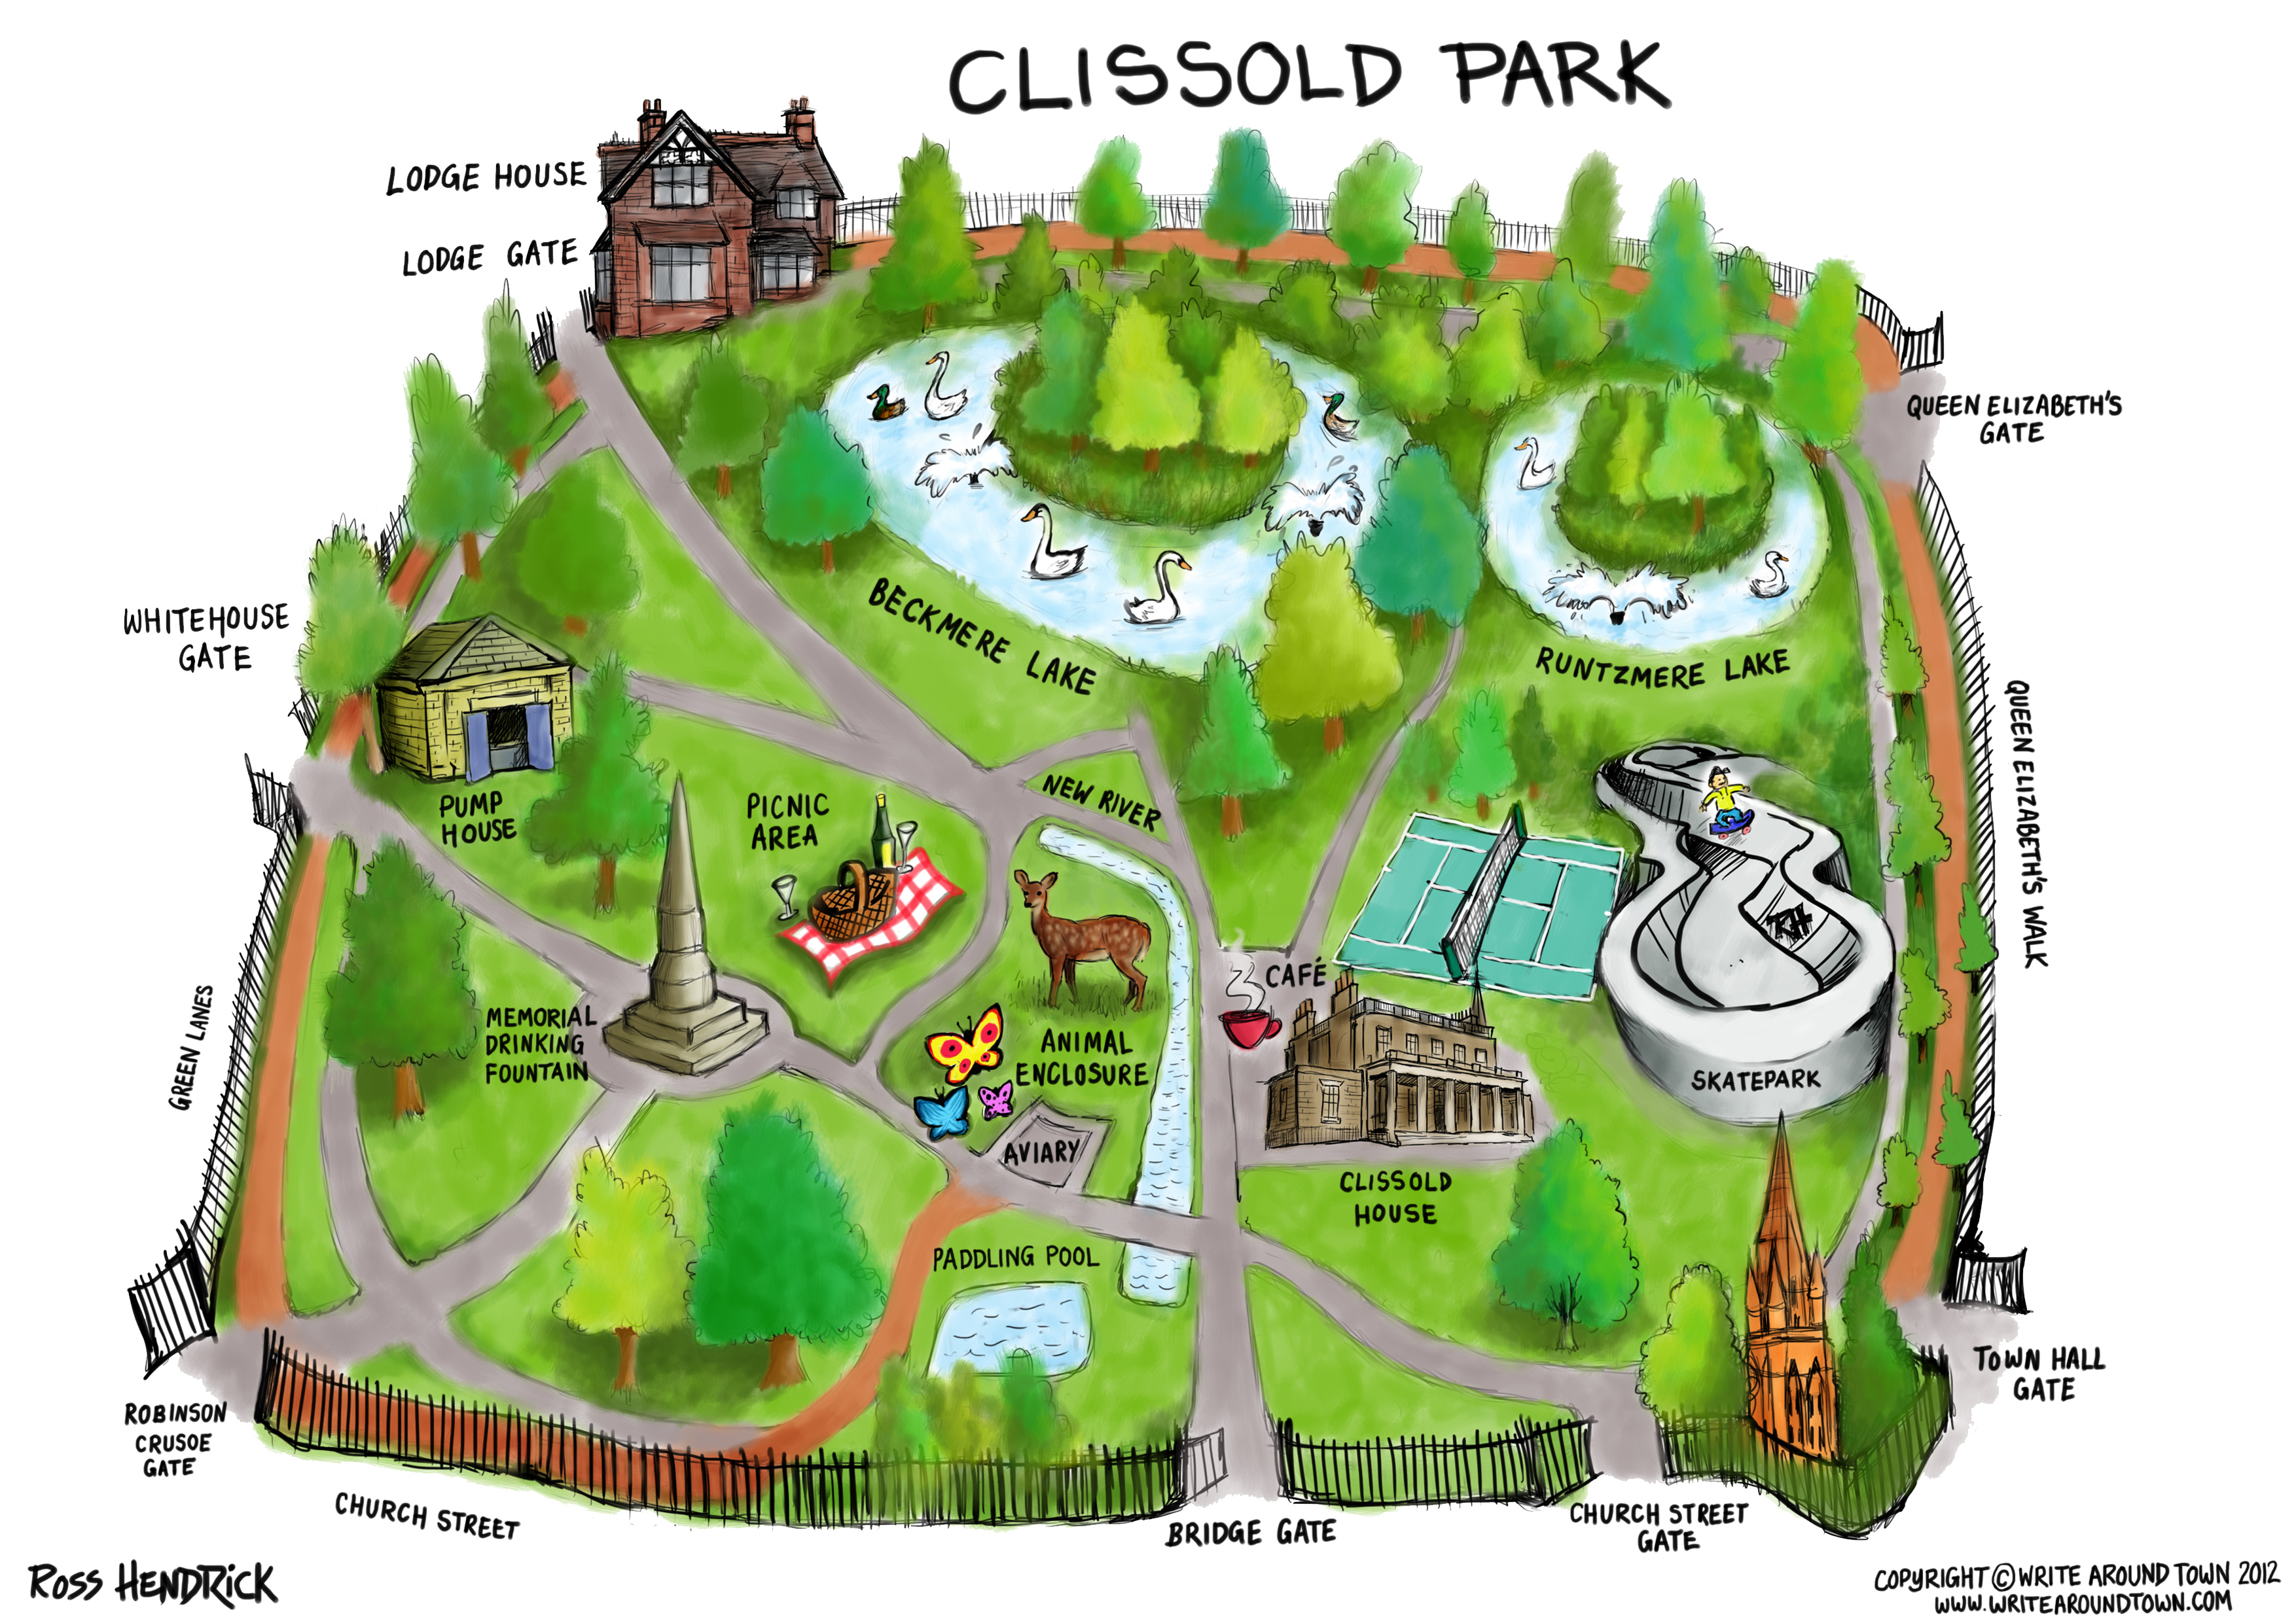 Talk To The Map Around The Park In 80 Days